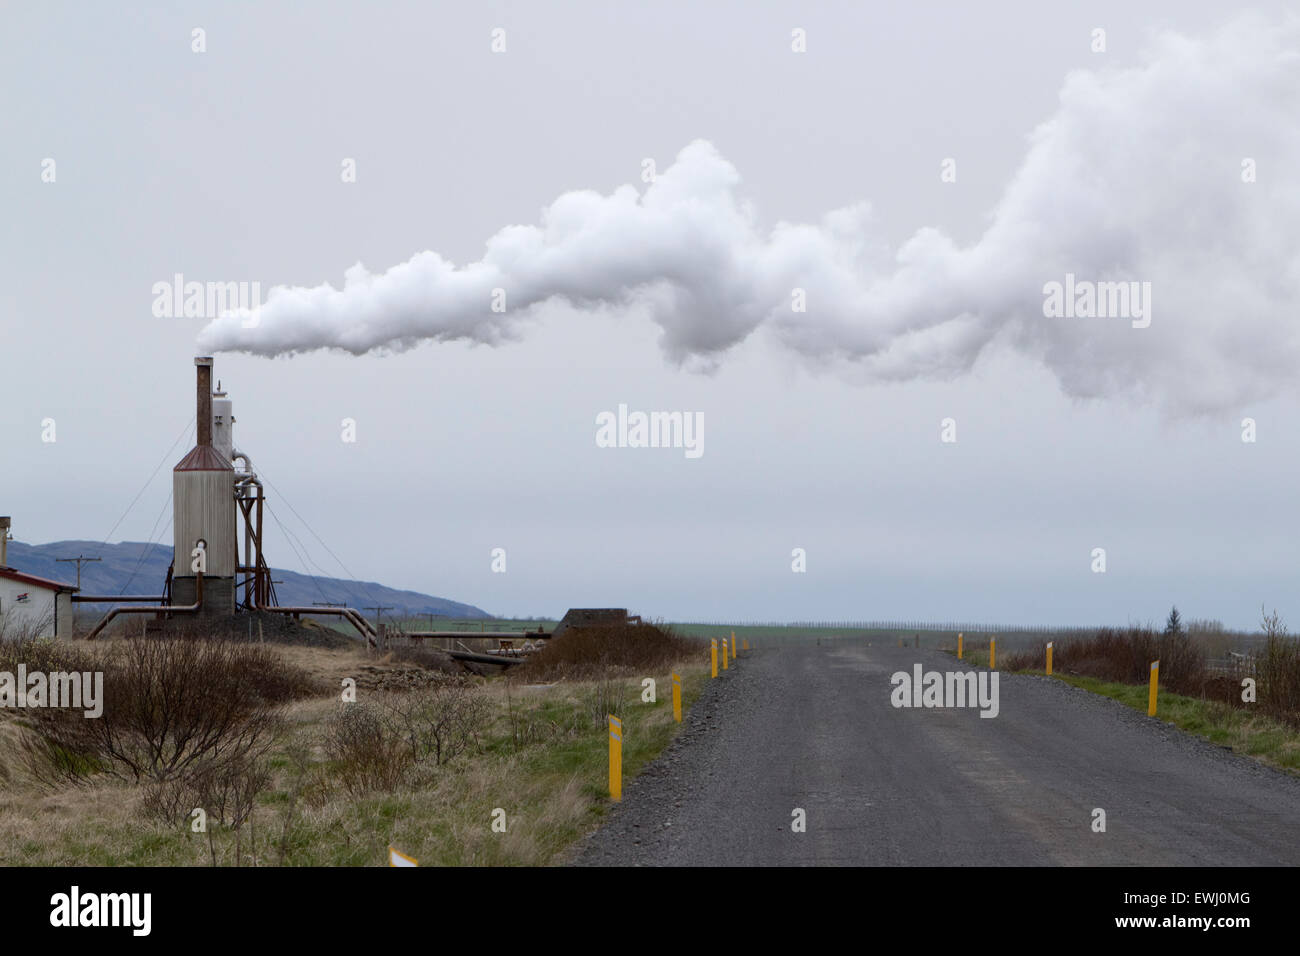 small rural community geothermal energy plant steam blowing over rural gravel road southern iceland - Stock Image